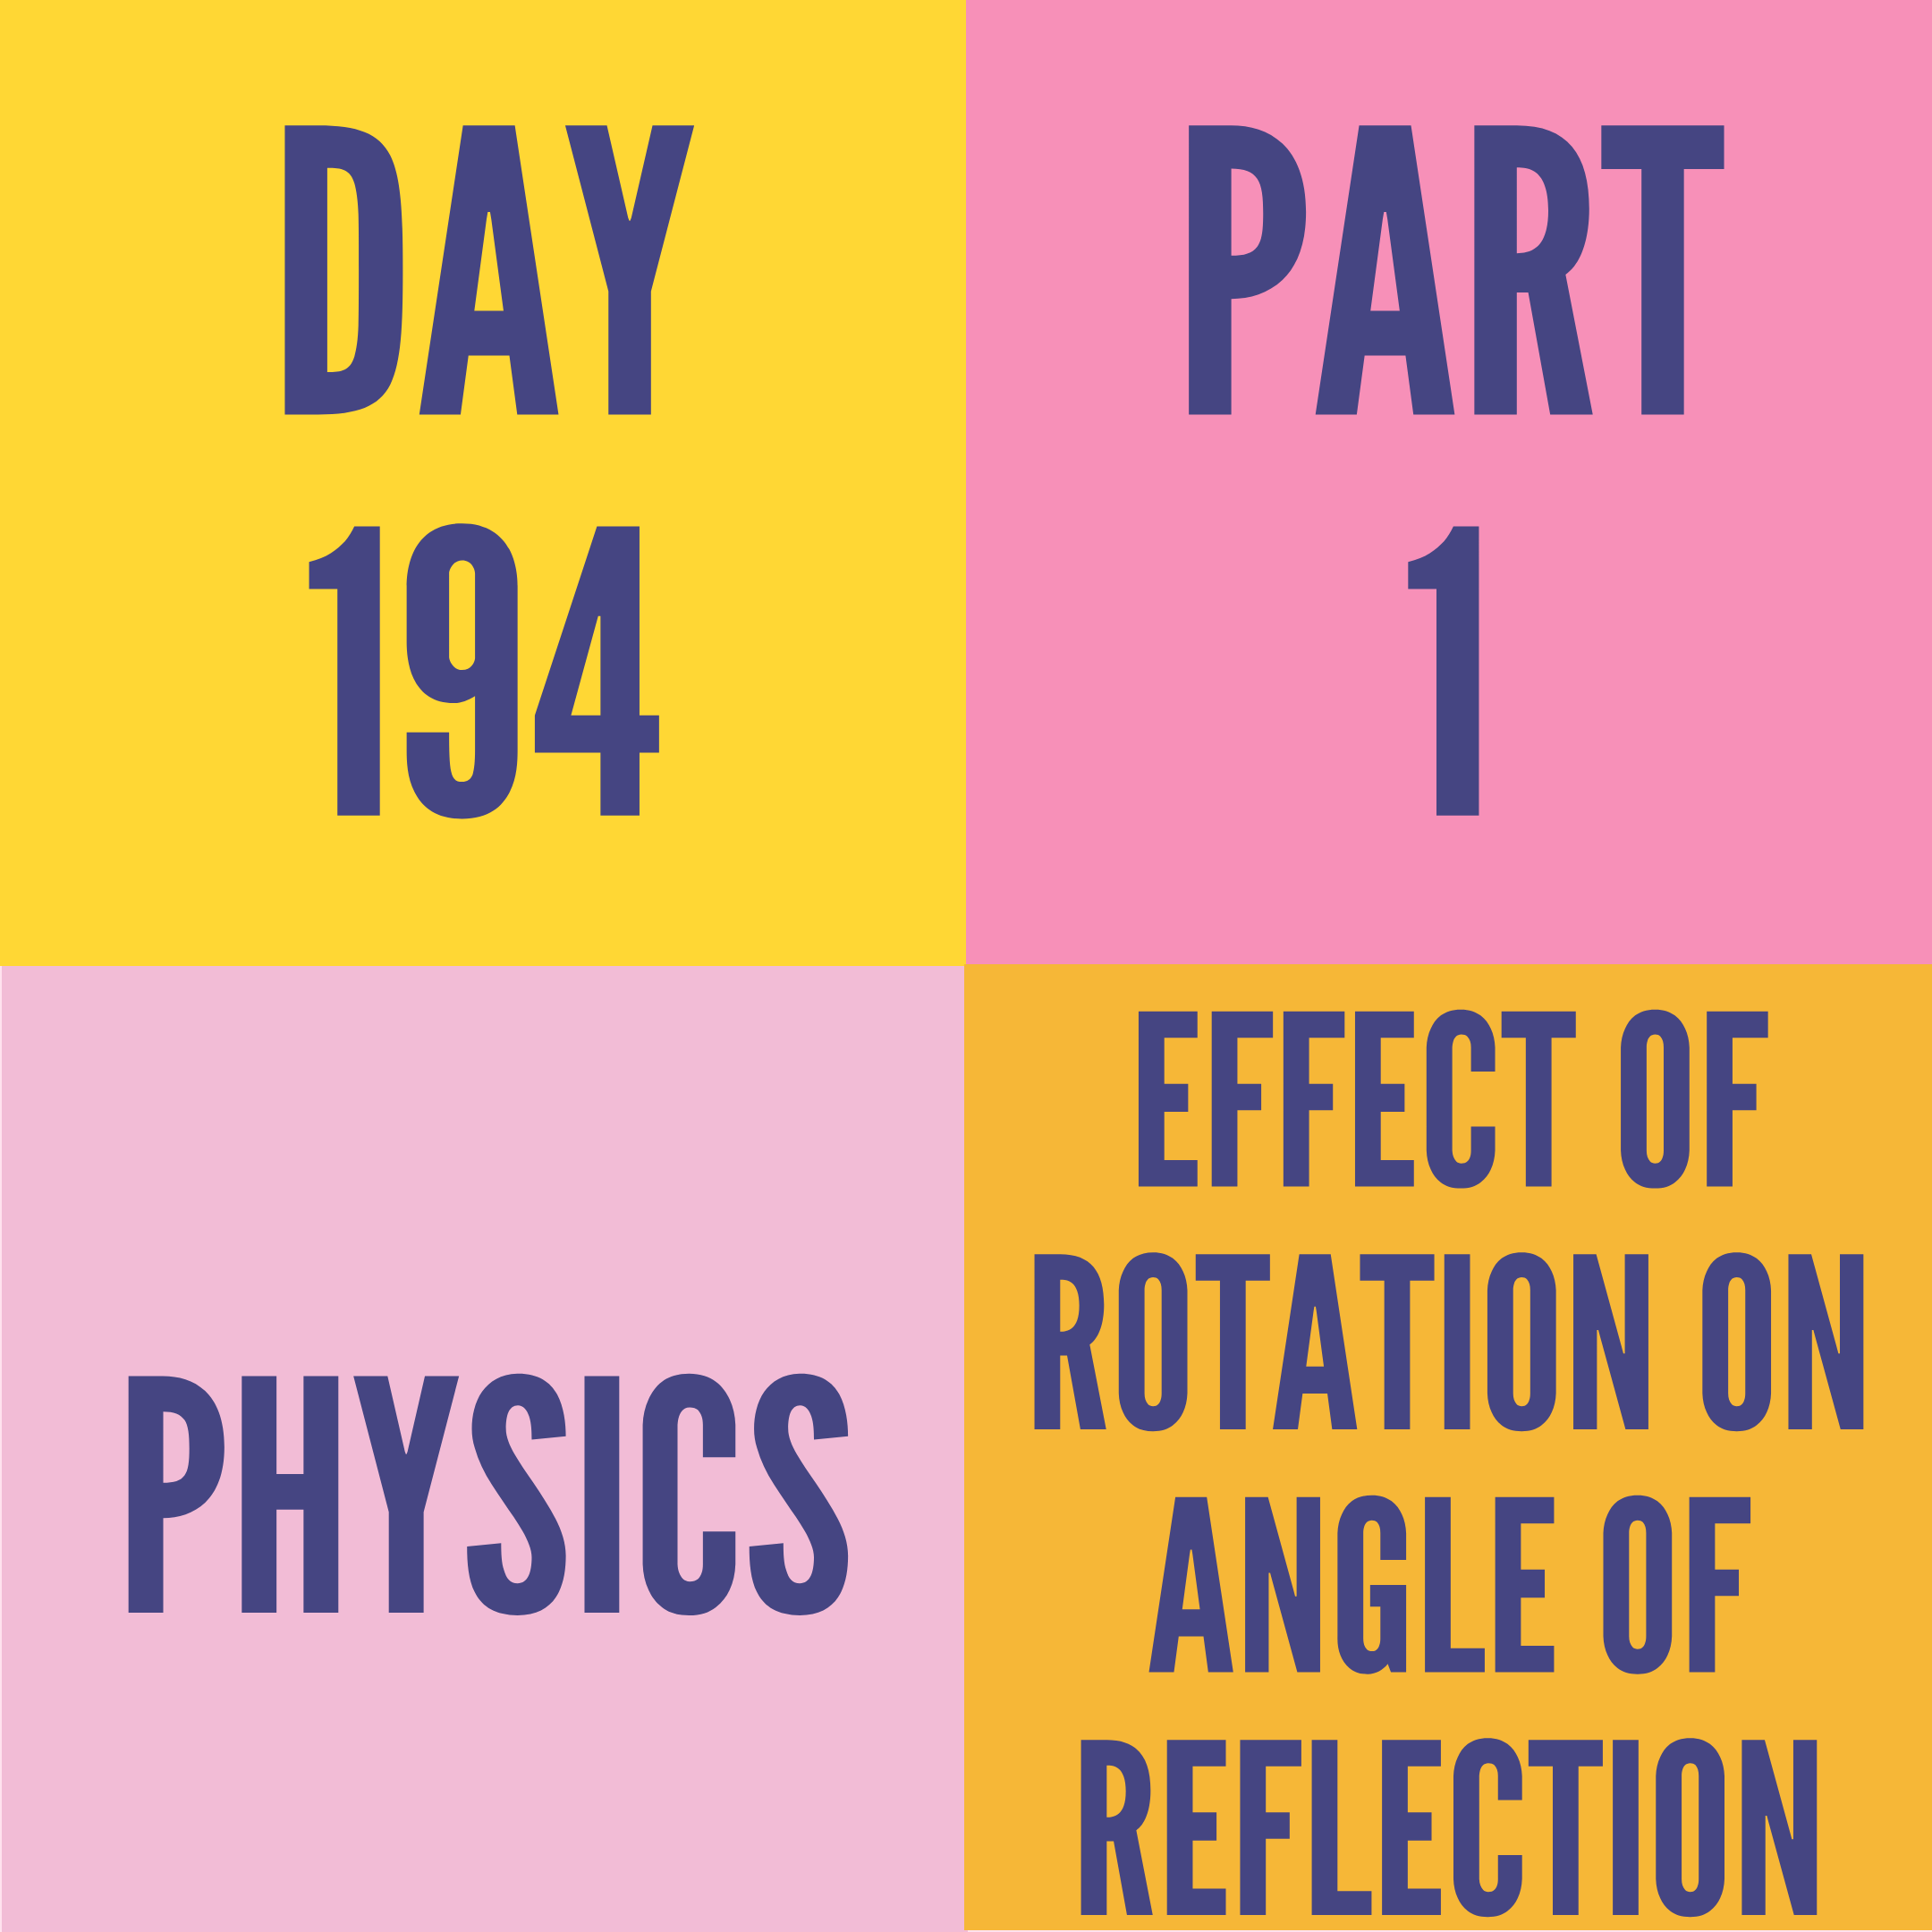 DAY-194 PART-1 EFFECT OF ROTATION ON ANGLE OF REFLECTION